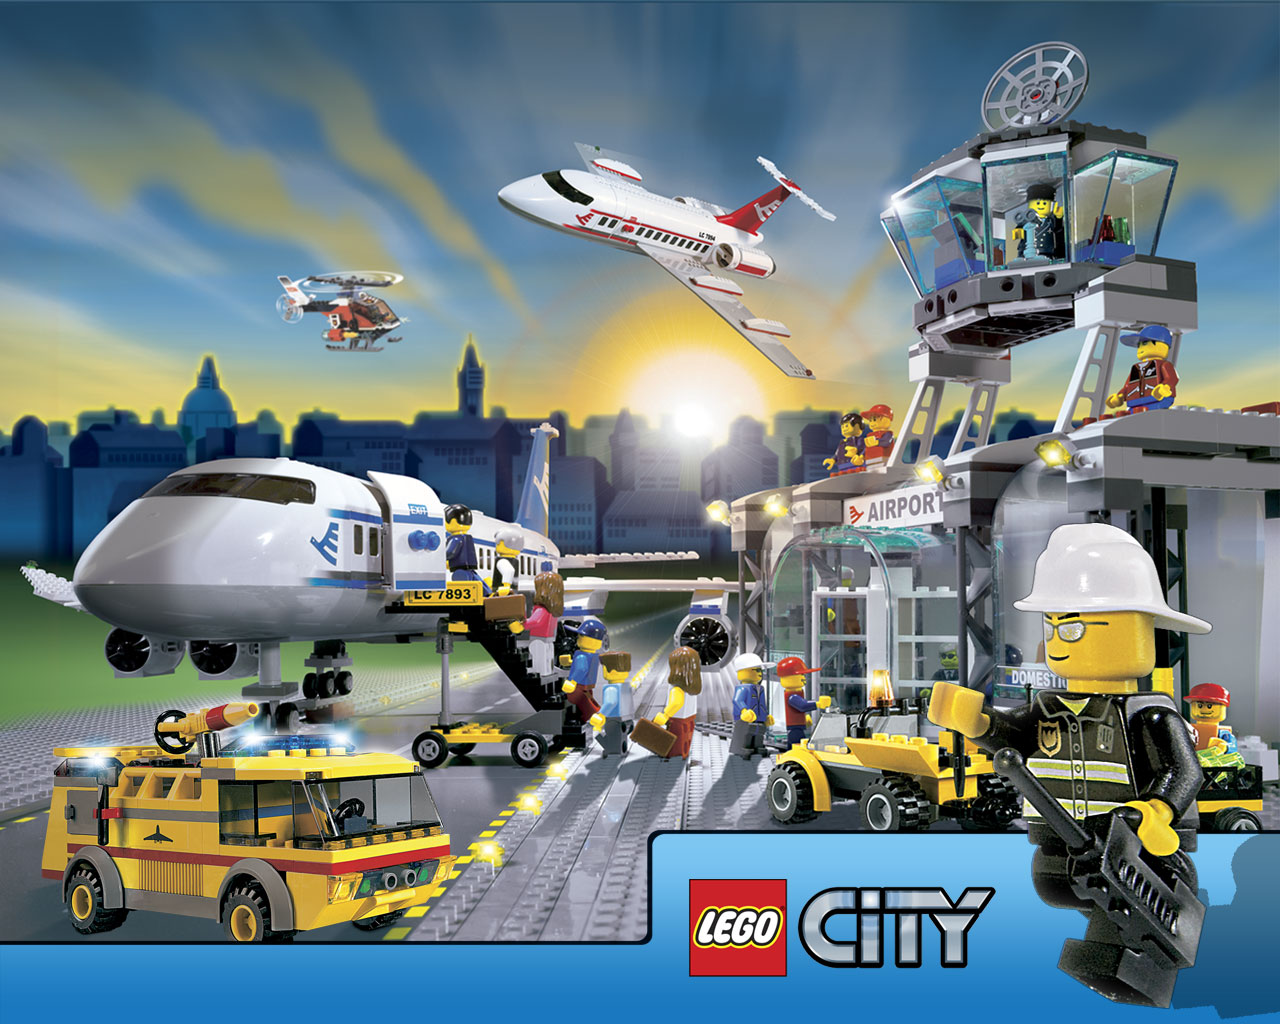 Lego City Airport 7893 Instructions